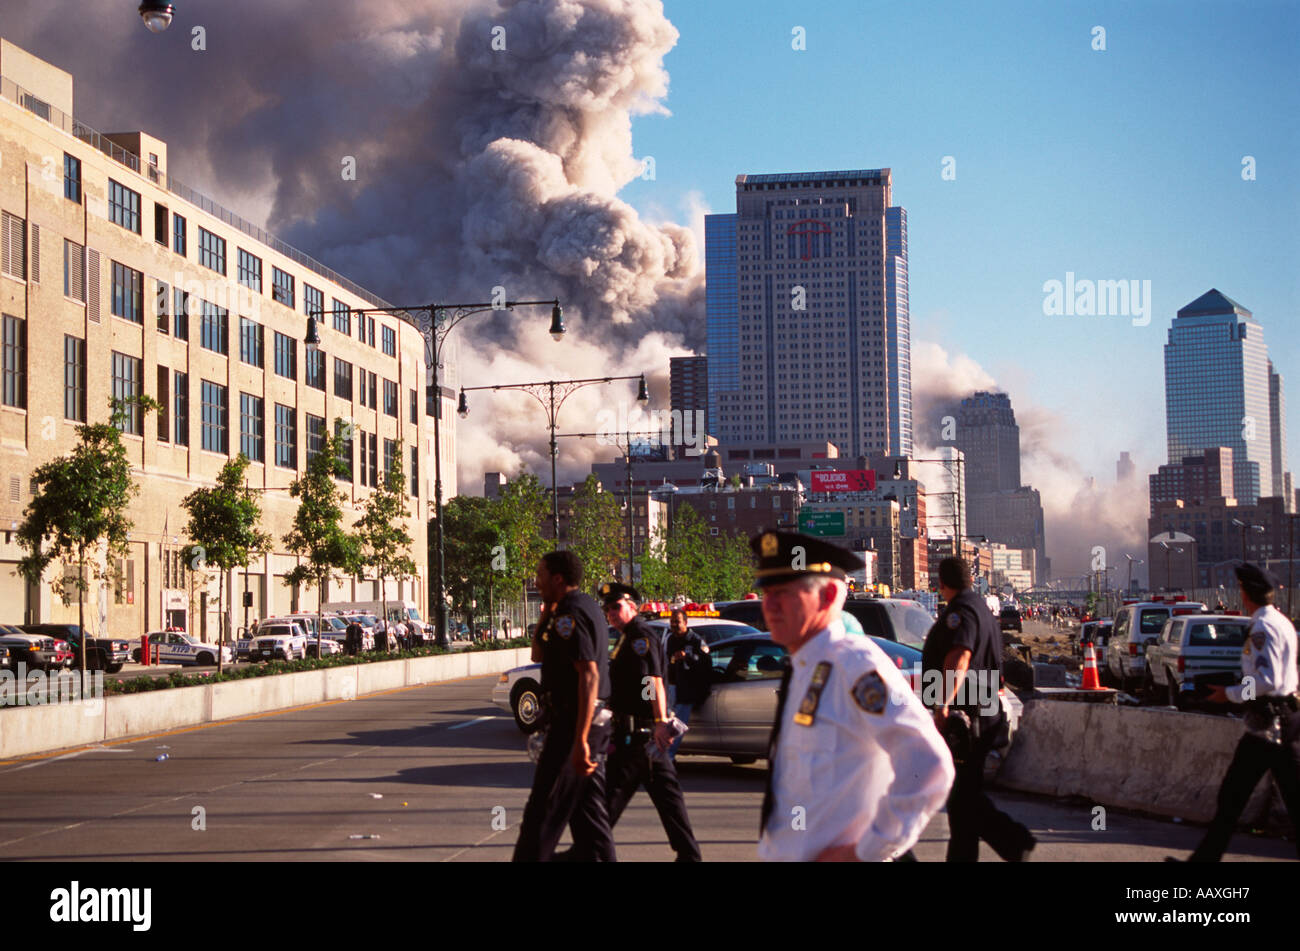 The collapse of the WTC 7 building on September 11th as seen from the west side highway in NYC. - Stock Image